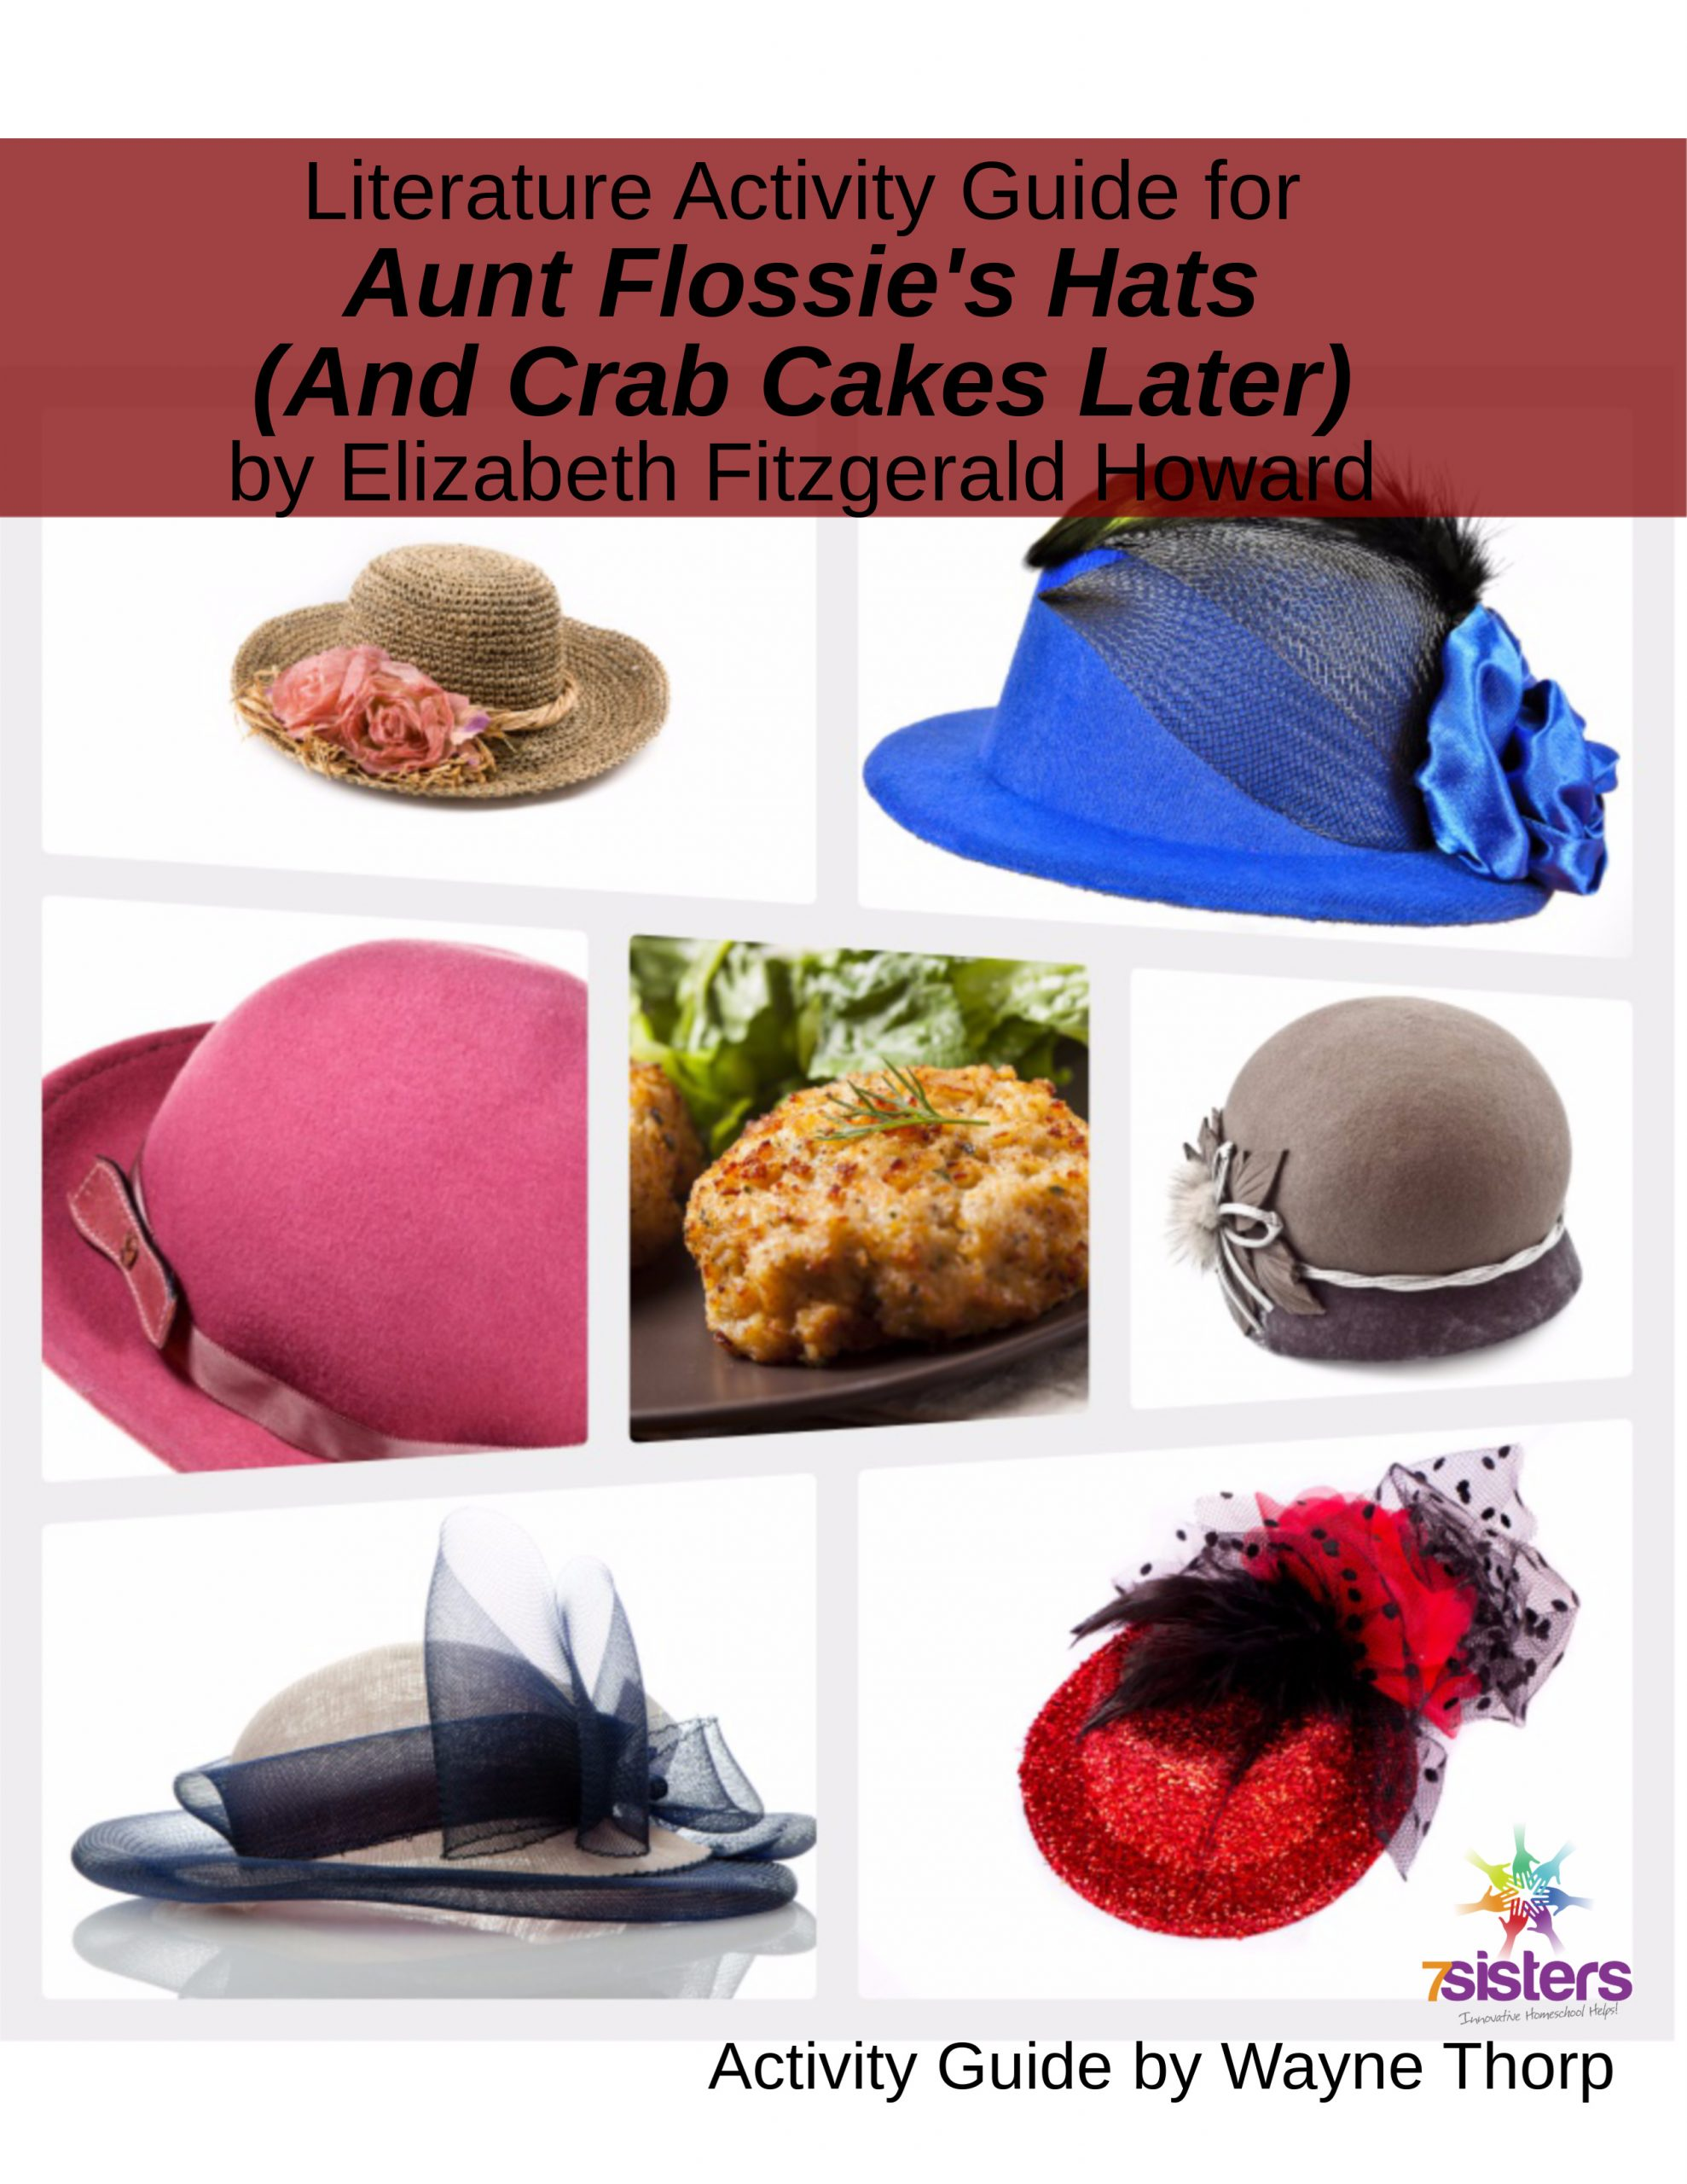 Aunt Flossie's Hat's Elementary Literature Activity Guide